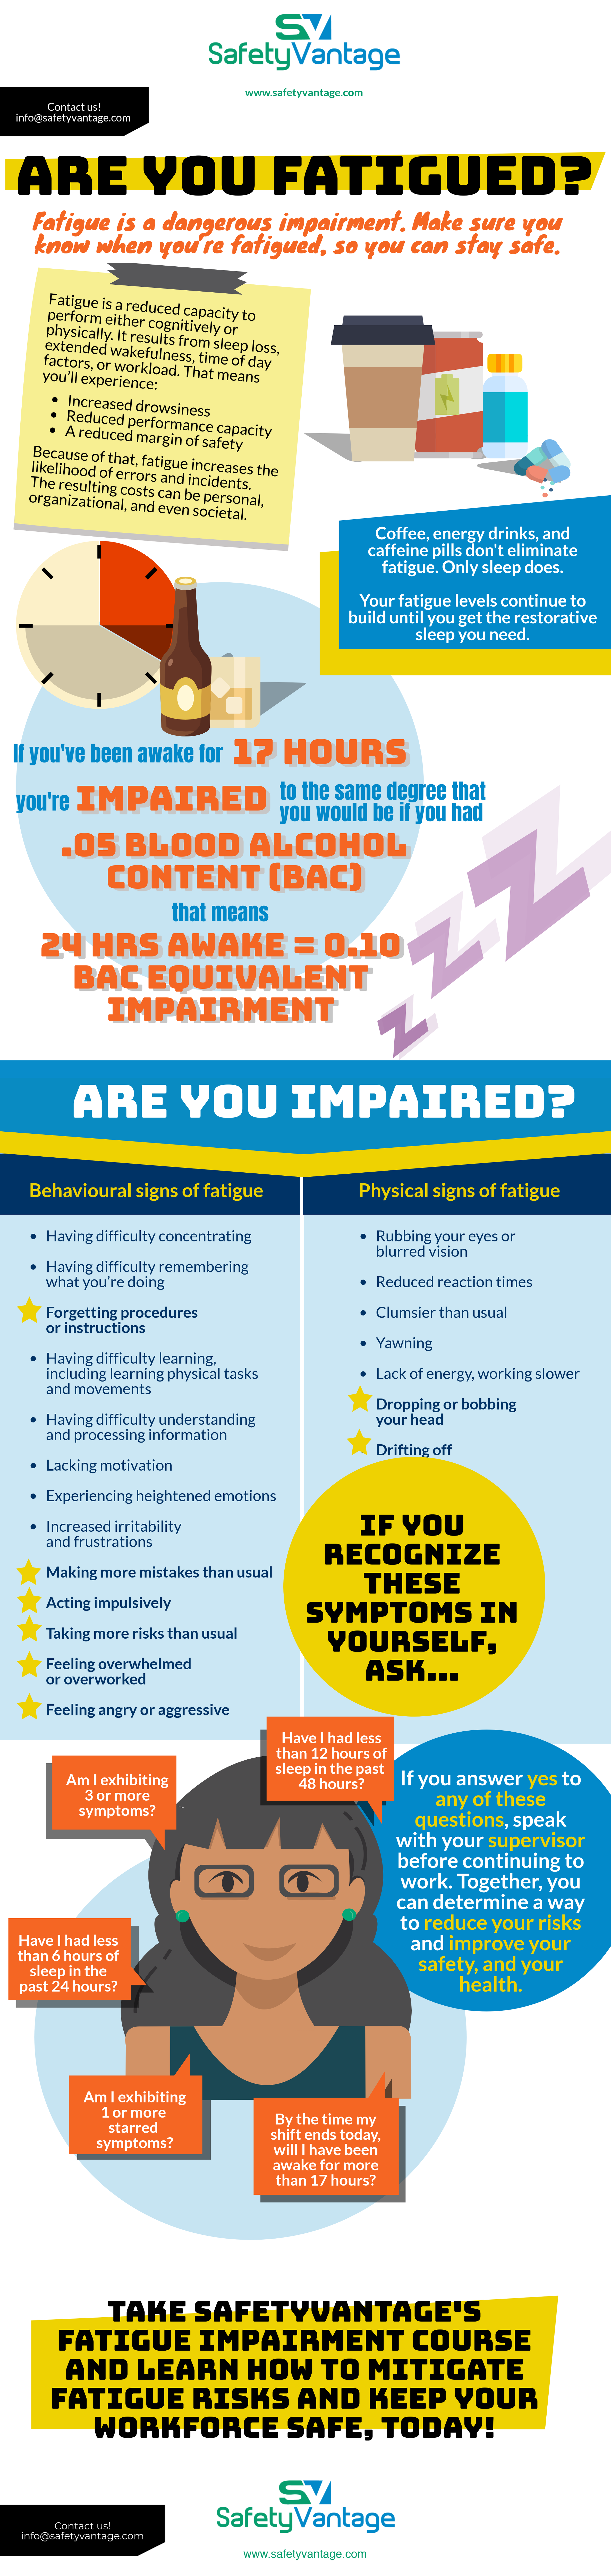 InfoGraphic - Fatigue is a dangerous impairment. Workers that have been awake for 17 hours are impairment to a degree equivalent to .05 Blood Alcohol Content